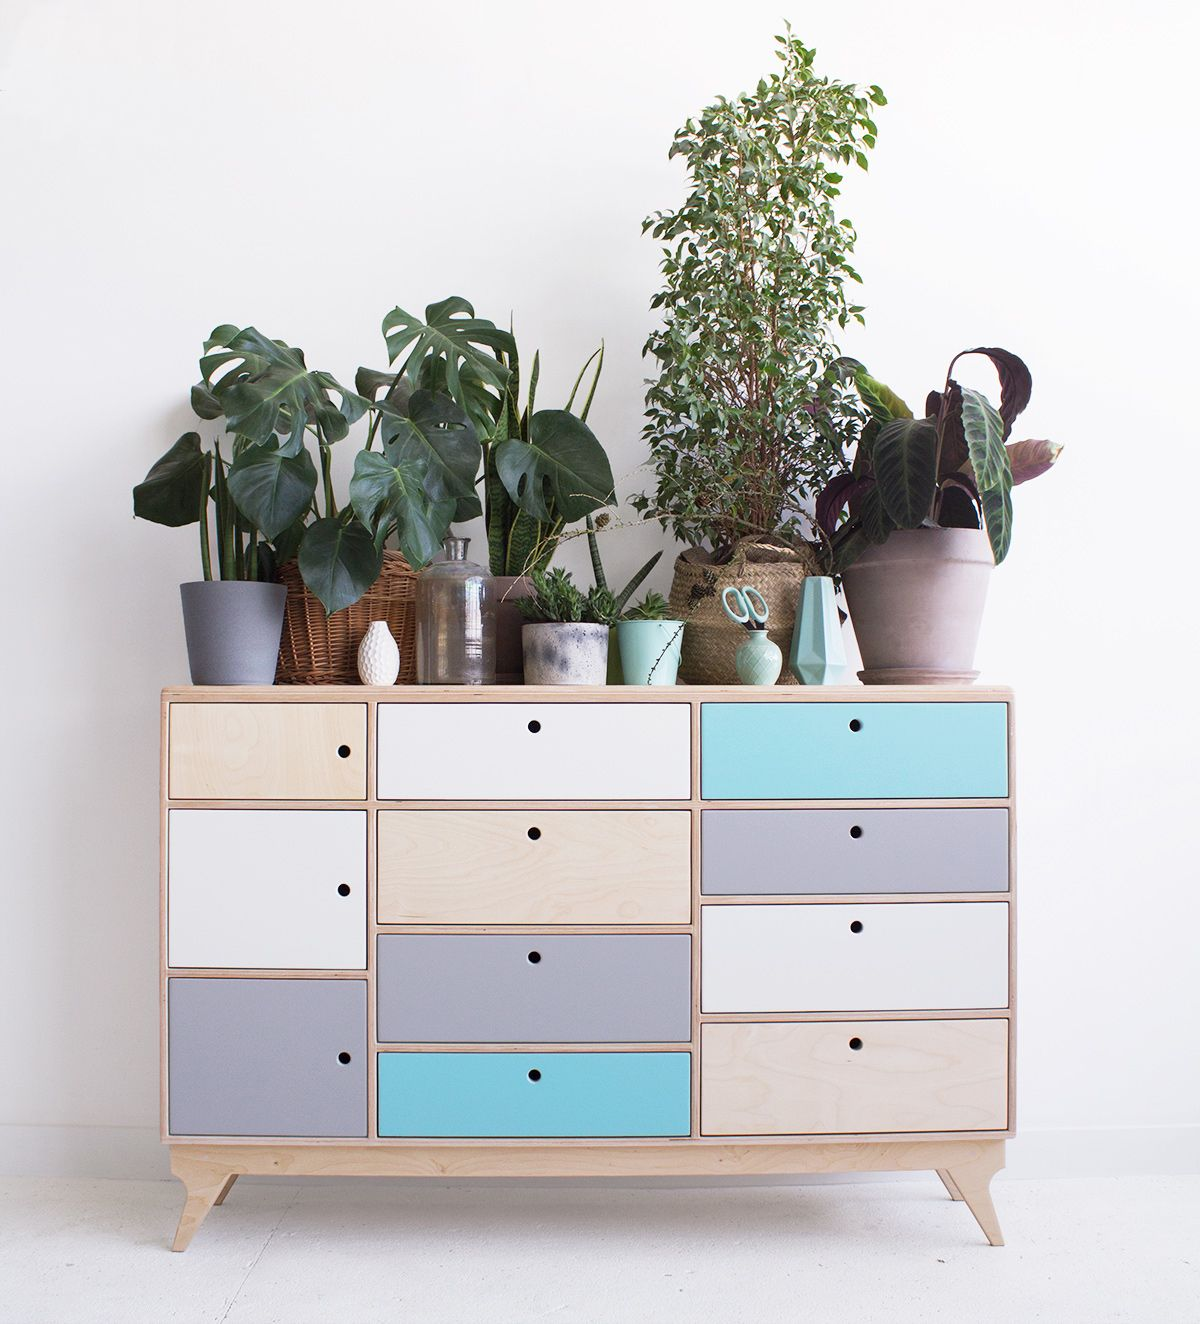 Chest Of Drawers Tallboy Mid Century Scandinavian Style In Etsy In 2020 Chest Of Drawers Walnut Furniture Solid Wood